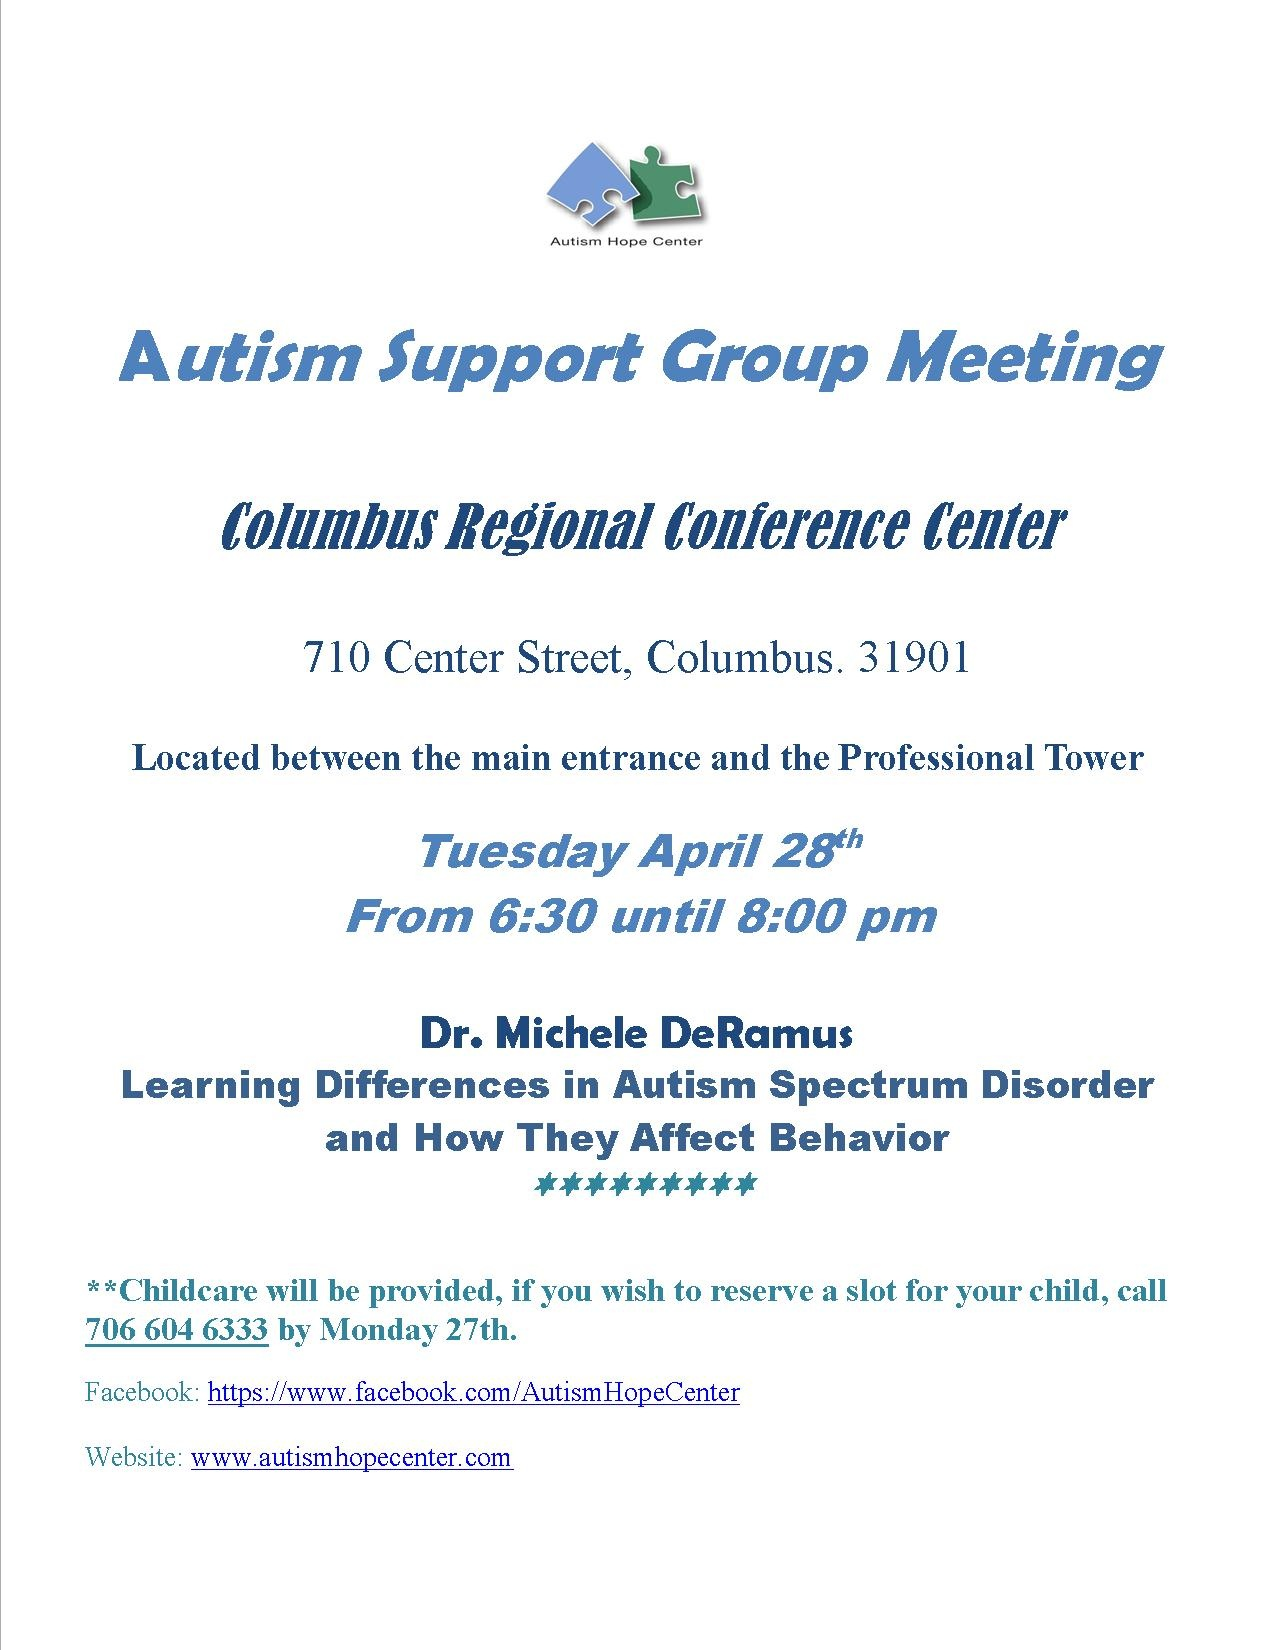 Dr DeRamus Speaks about Autism Spectrum Disorder in Recognition